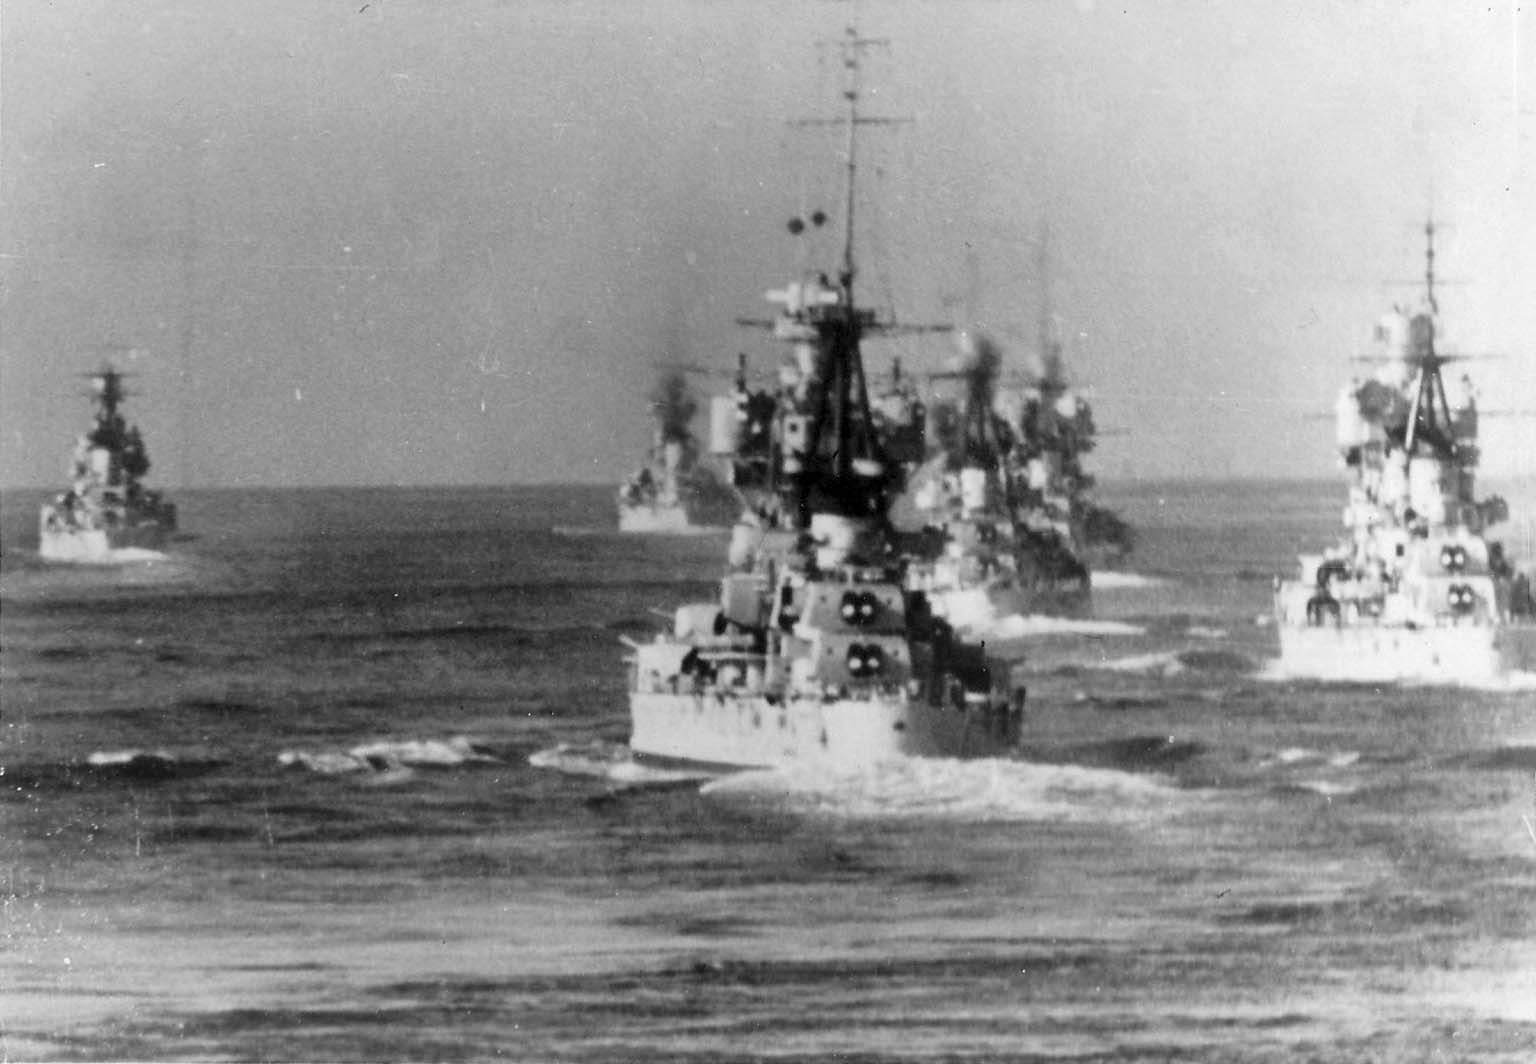 Italian heavy cruisers